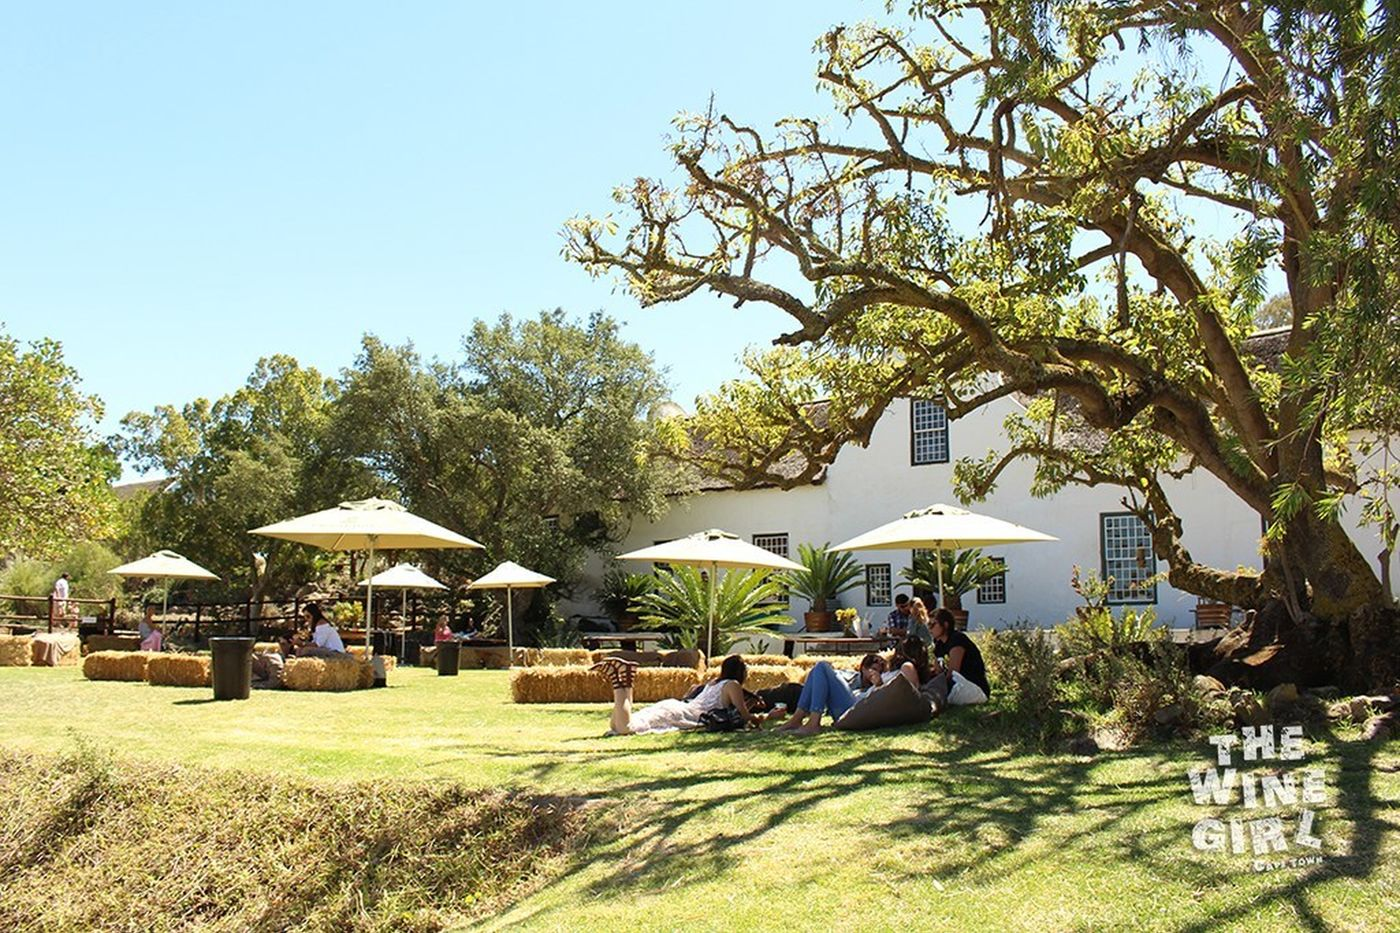 Groote Post Relaxed Tree Vibes